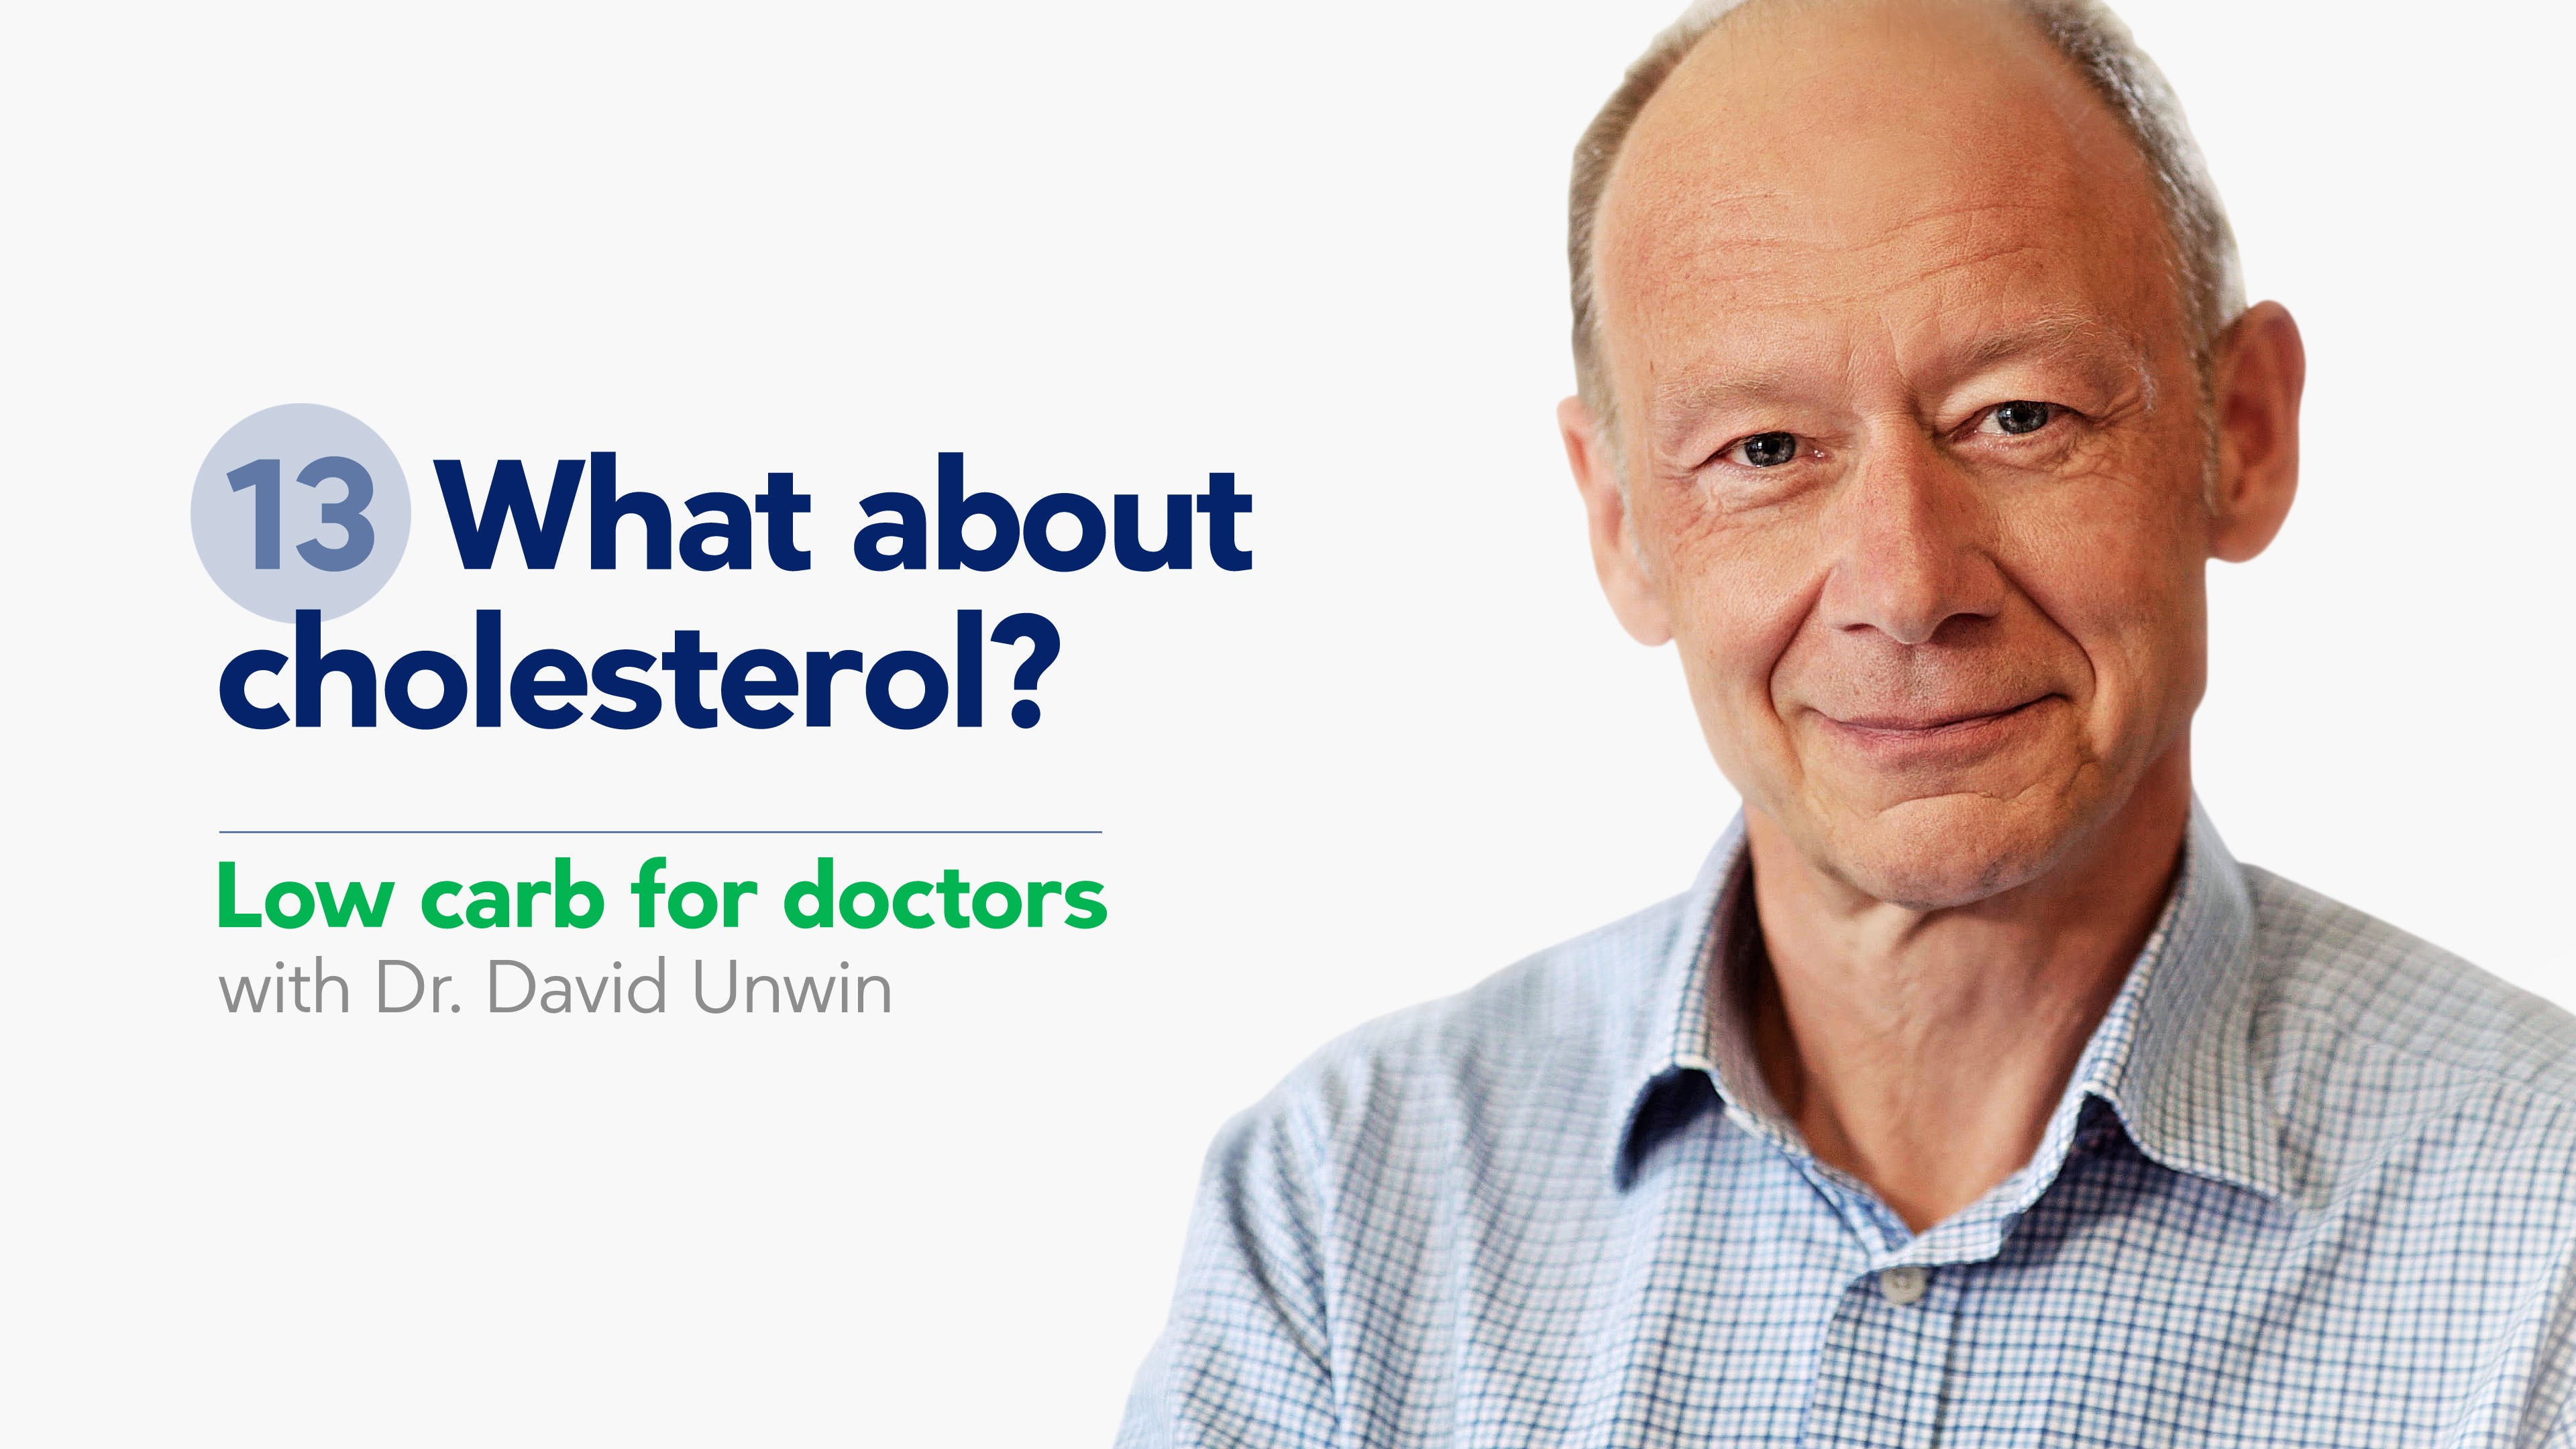 What about cholesterol?